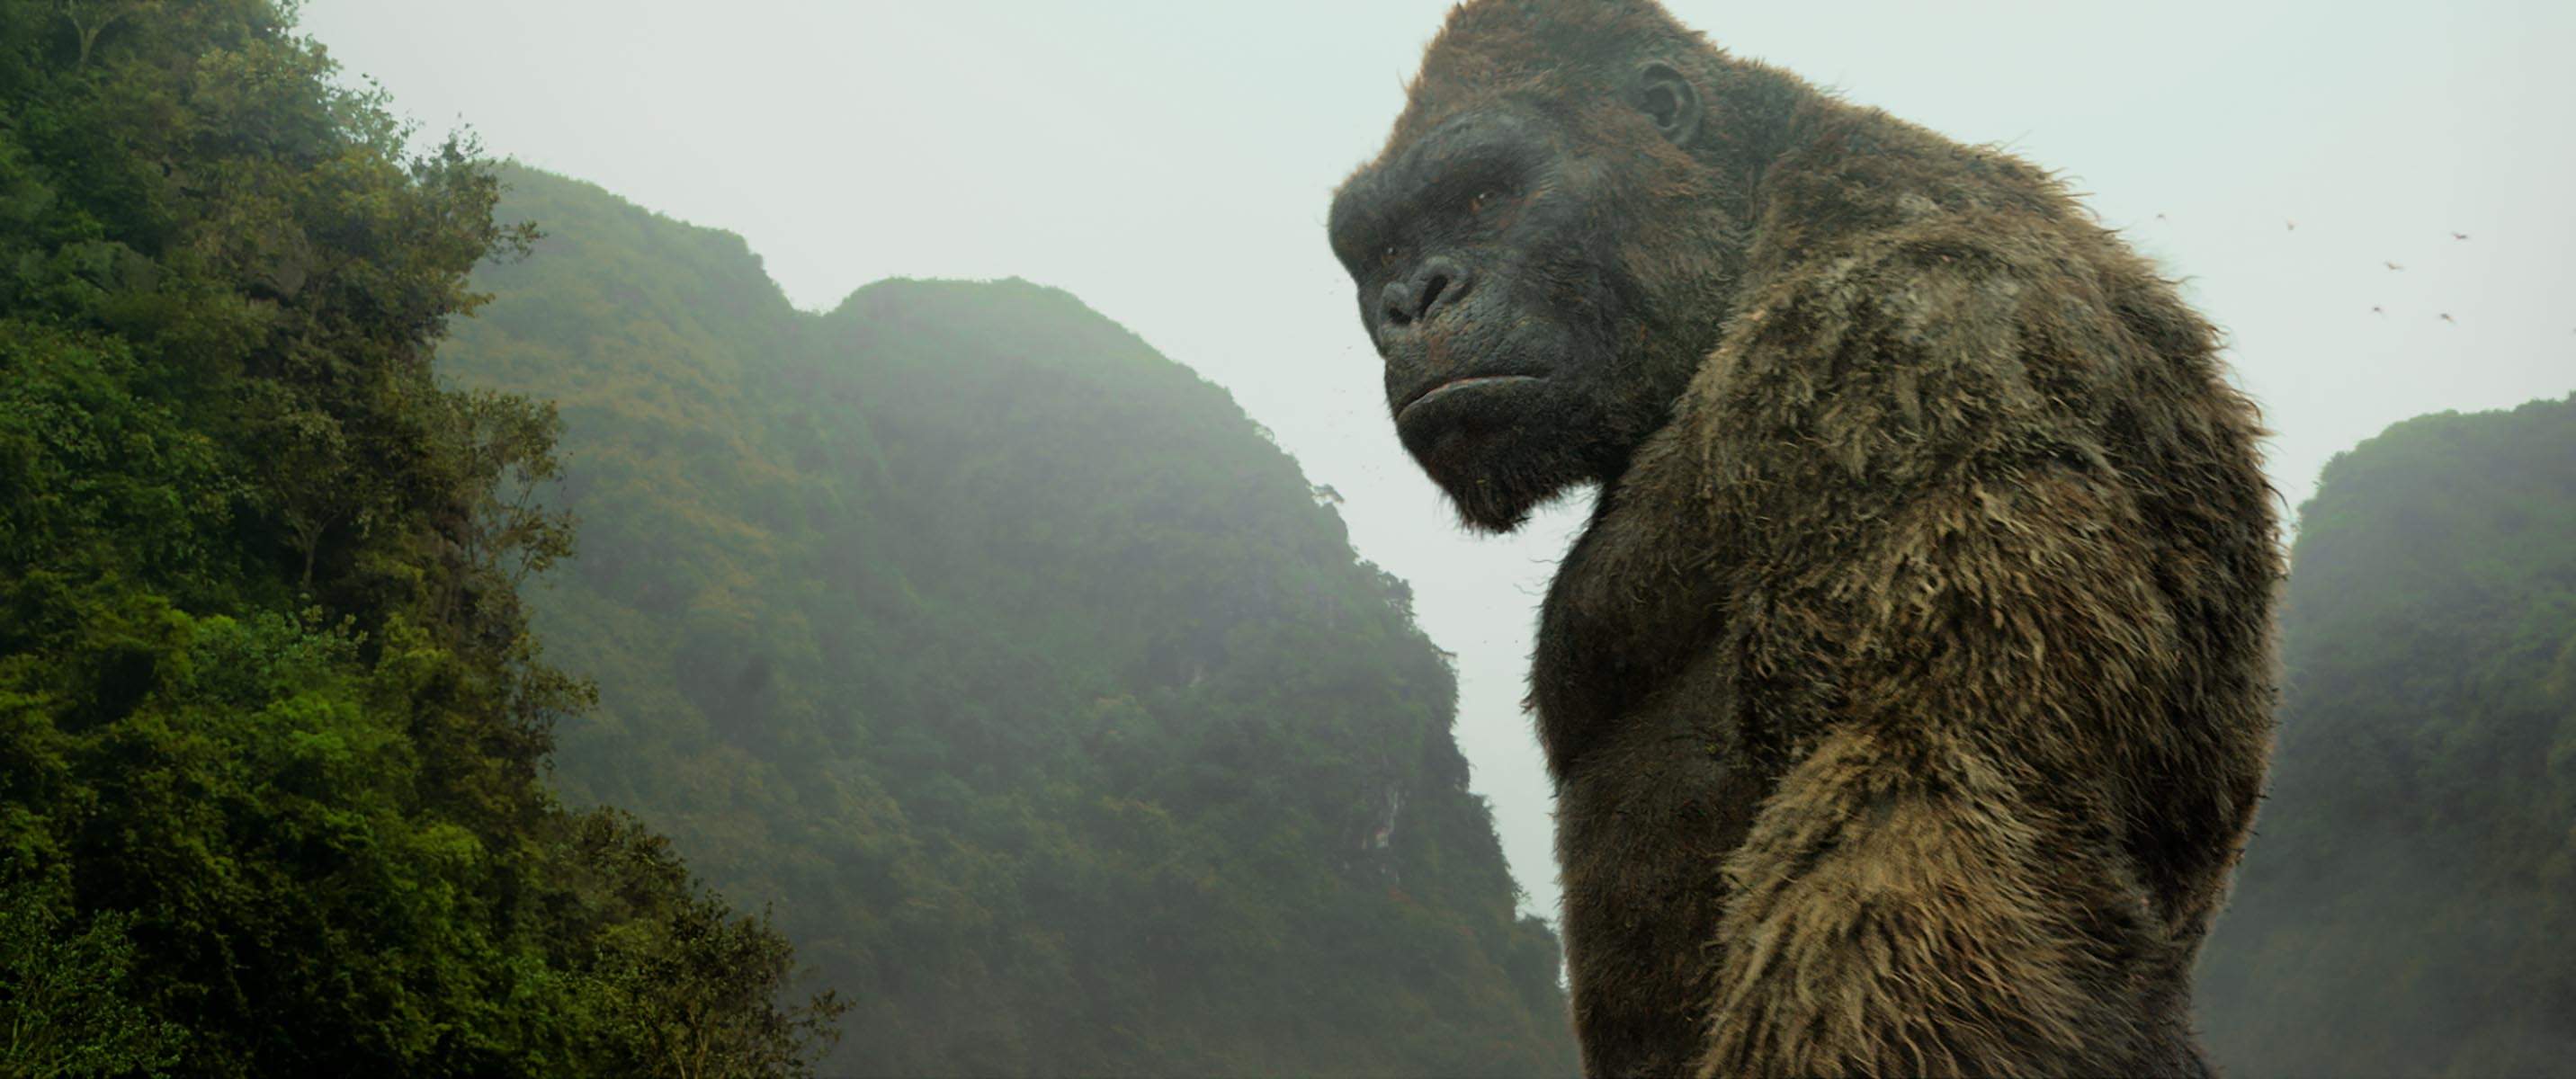 Kong skull island soundtrack on cd - Kong Skull Island Soundtrack Is Now On Spotify And Is Fit For A King Indiewire